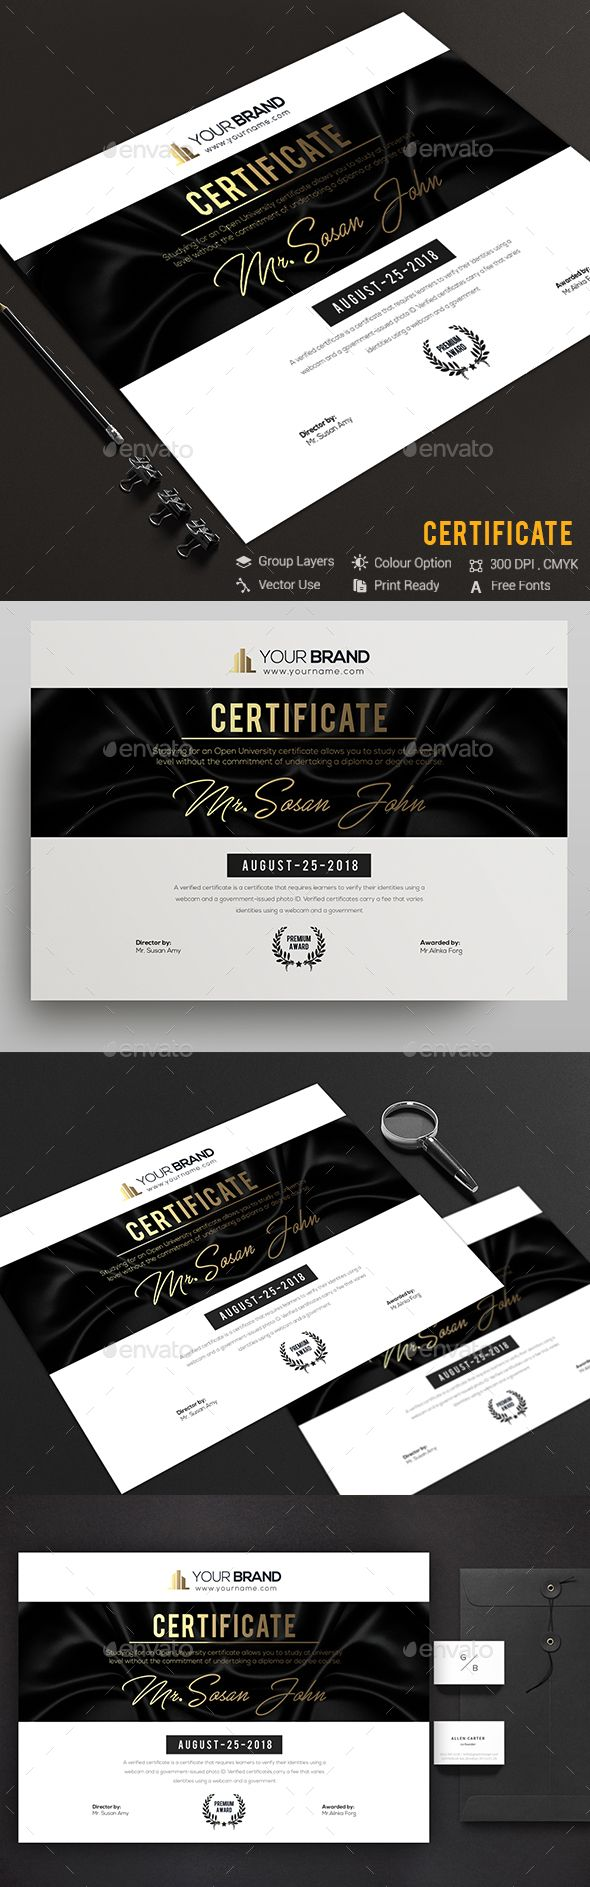 CertificateCertificate Template Fully Clean Certificate A4 Paper Size With Bleeds Quick and easy to customize templates Any Size Changes Fully Group Layer Free Fonts Use Fully Vector